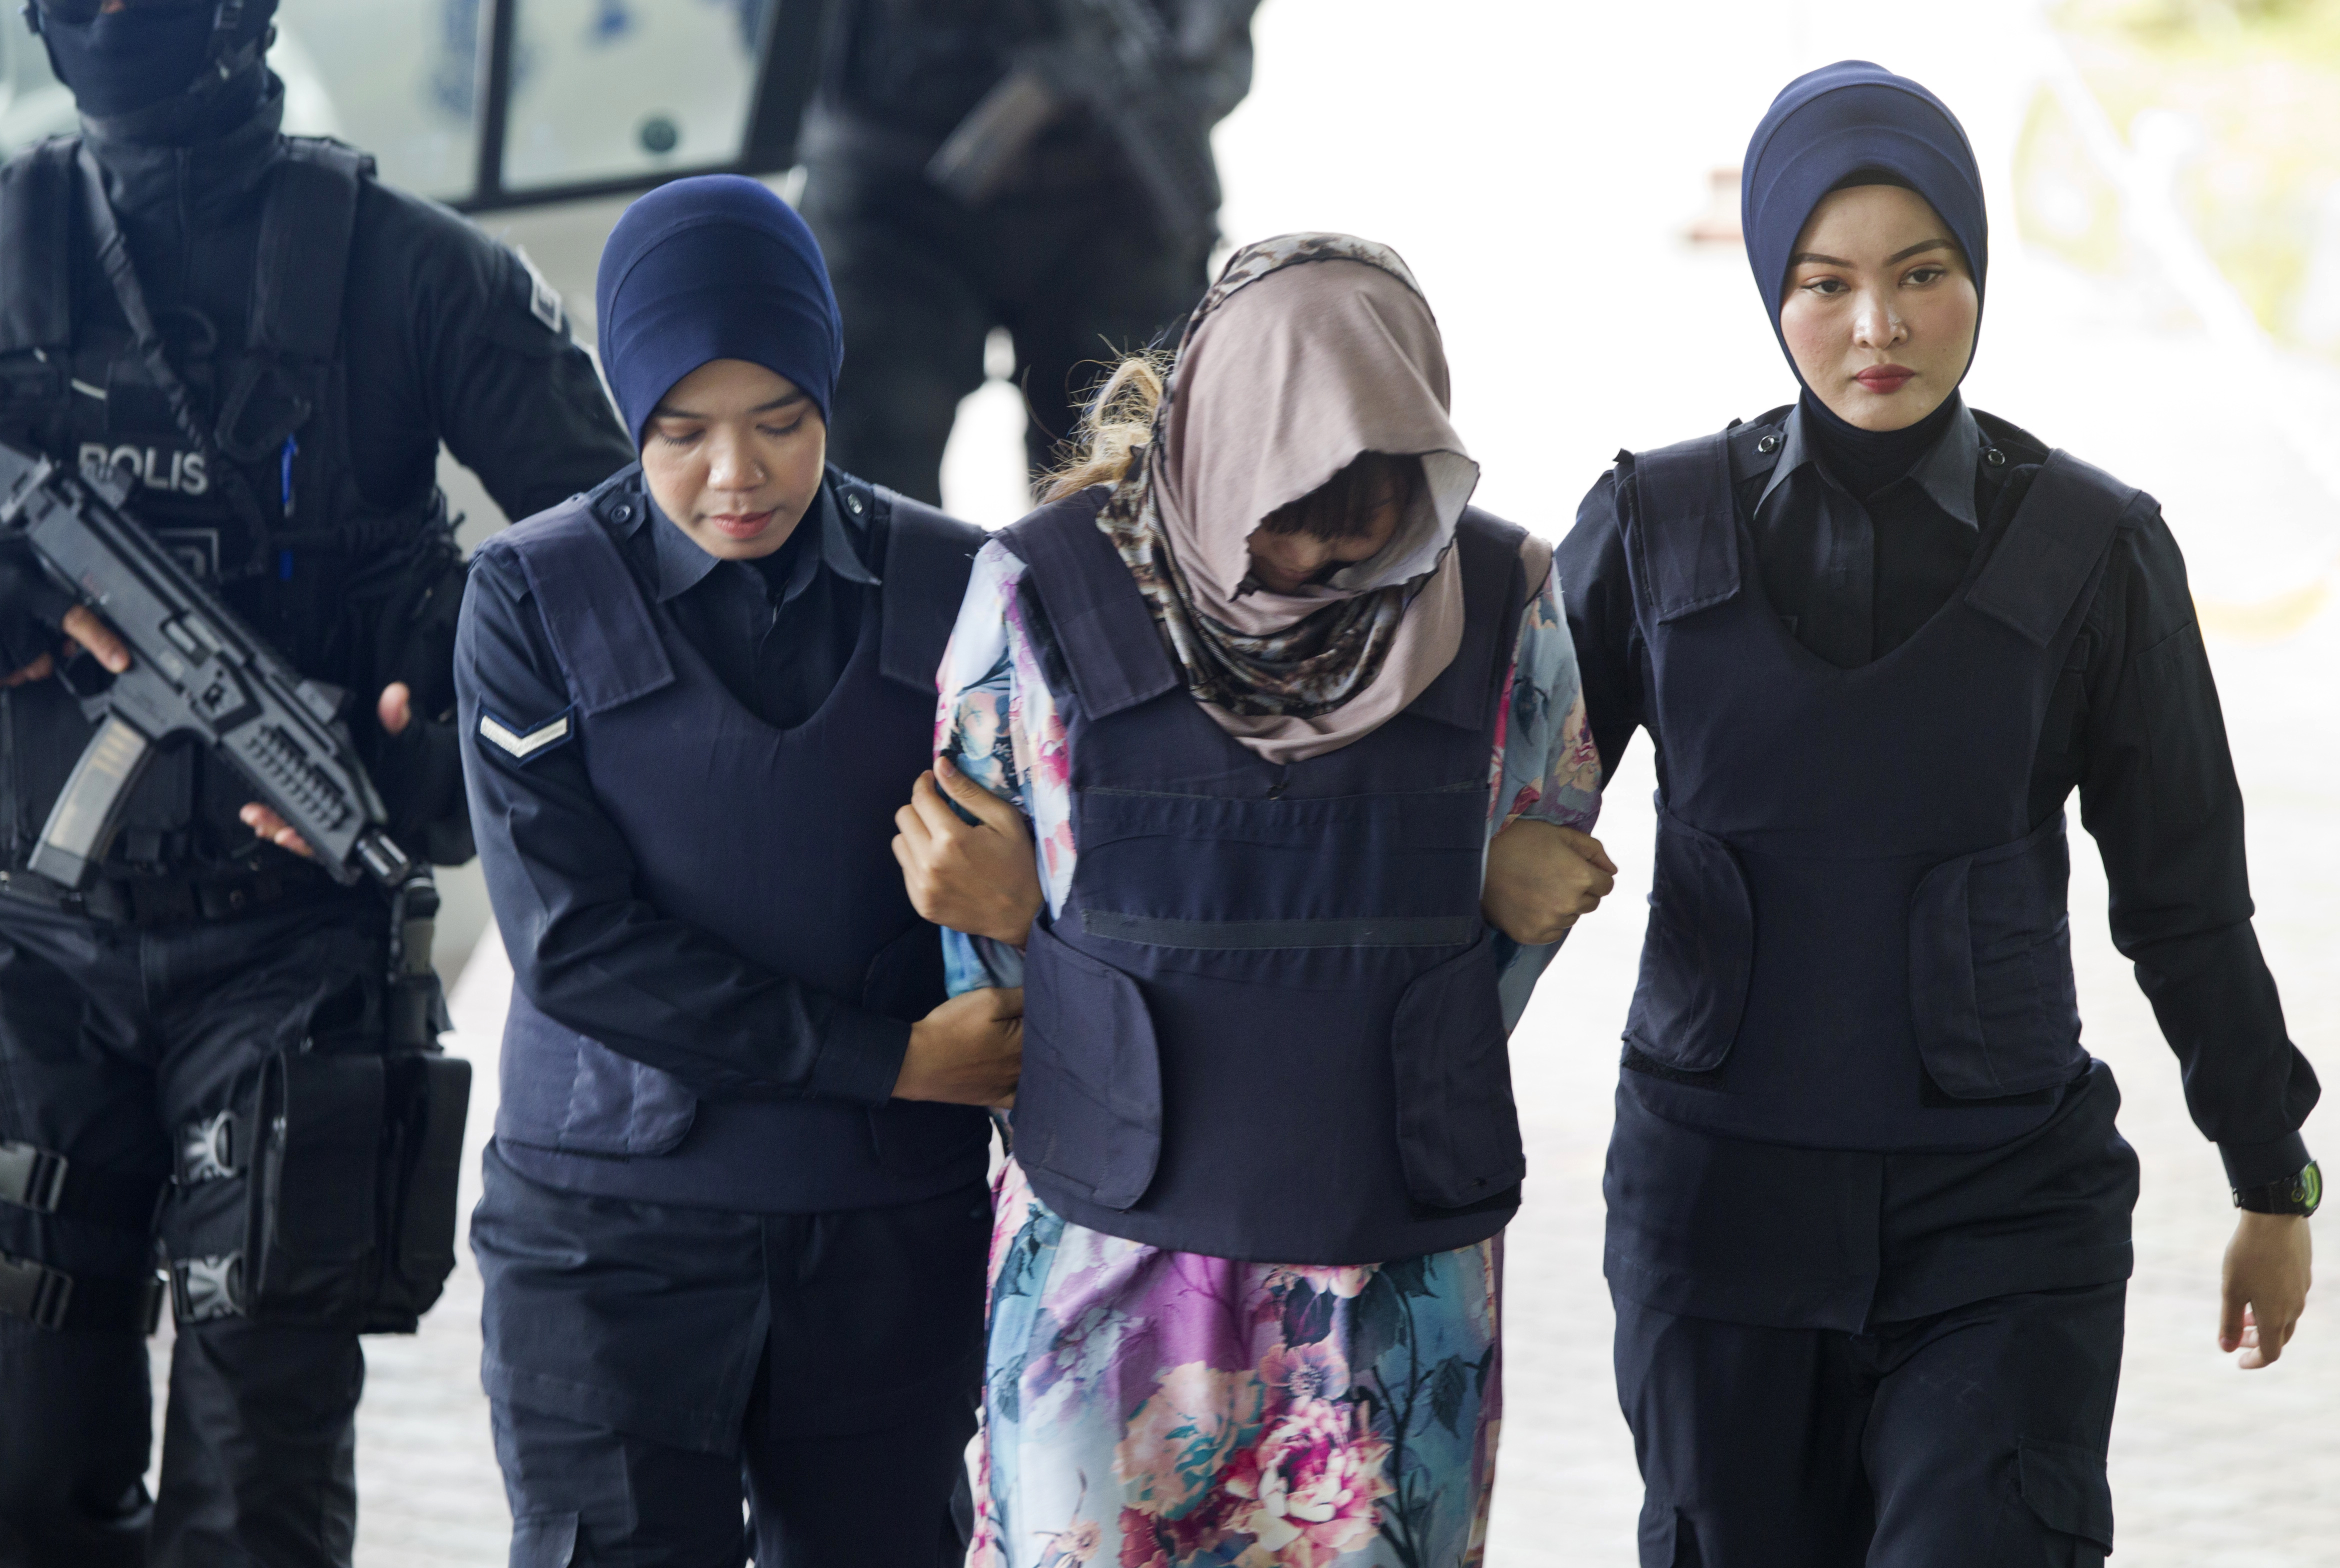 Vietnamese Doan Thi Huong is escorted by police as she arrives for a court hearing at Shah Alam High Court in Shah Alam, Malaysia, Wednesday, Nov. 7, 2018. The two woman, Doang and Indonesian Siti Aisyah, arrived at court for case management after Malaysian court has ordered them to enter their defense over the murder of north Korean leader's half brother in an assassination that has gripped the world. (AP Photo/Yam G-Jun)